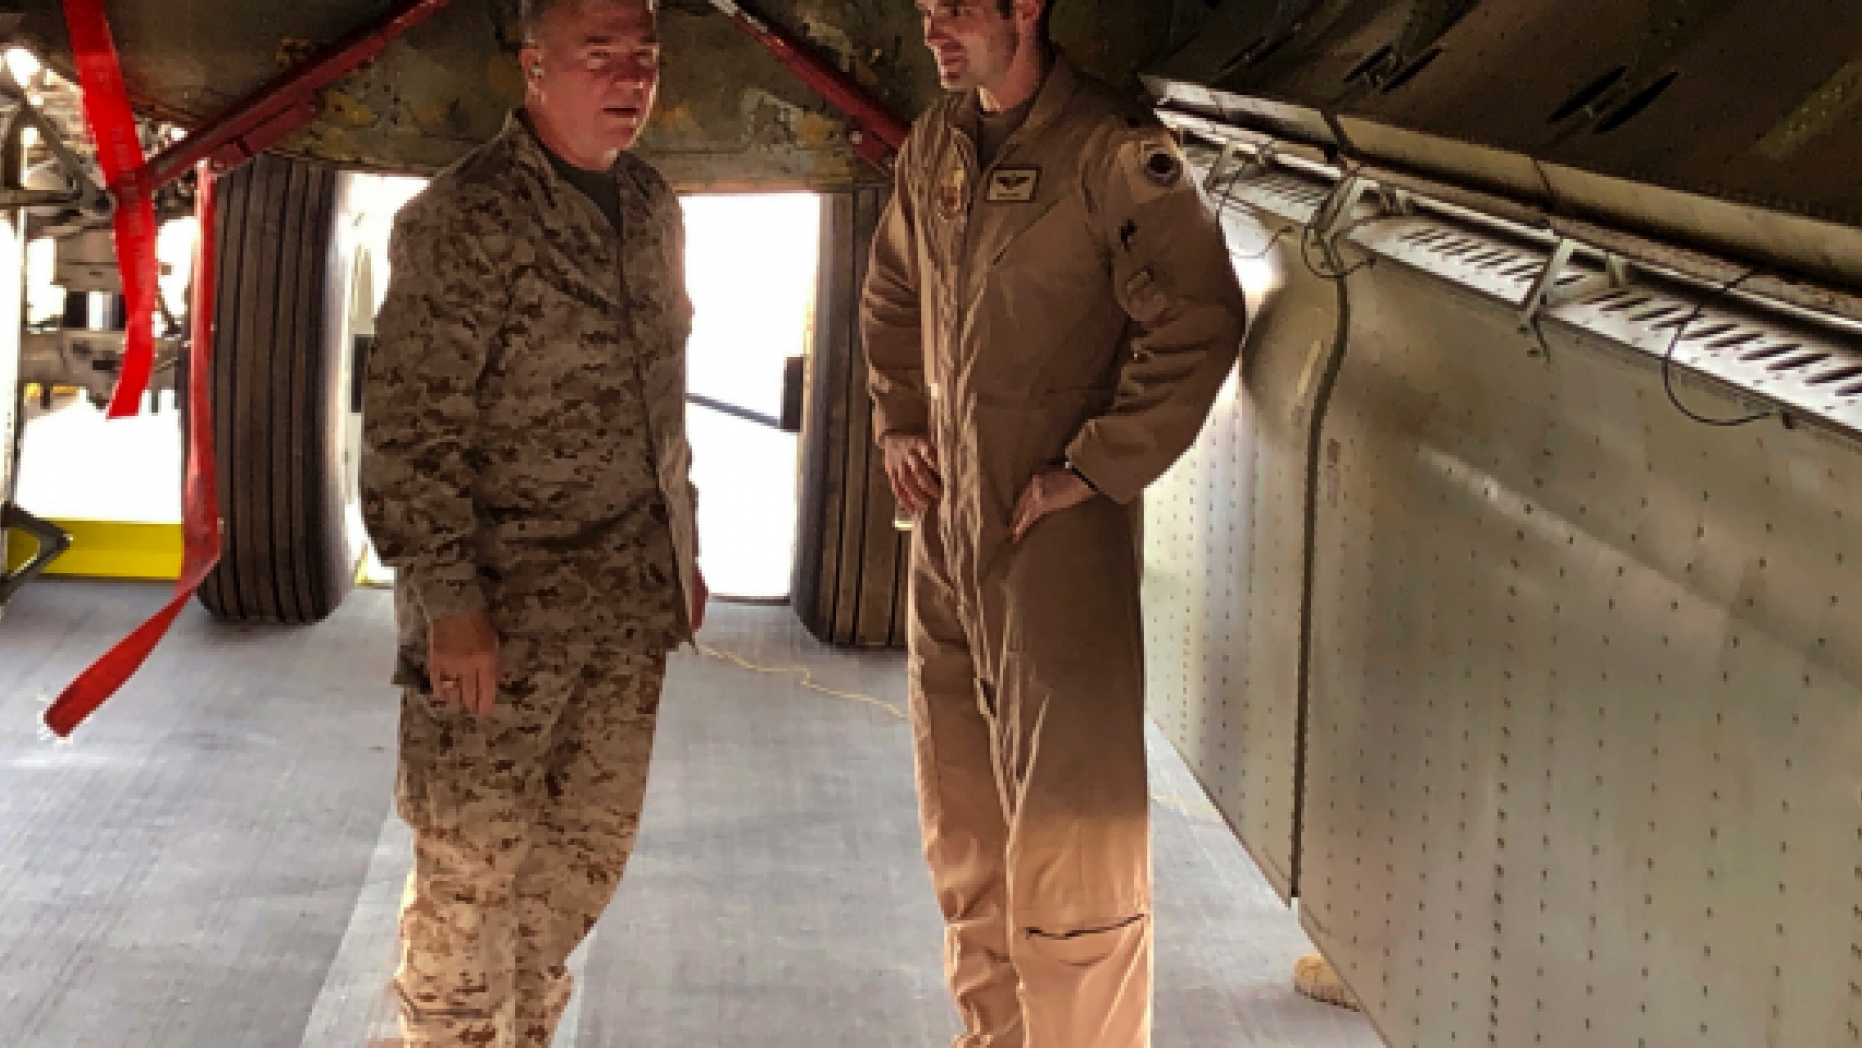 """Marine Gen. Frank McKenzie, head of U.S. Central Command, confers with an Air Force officer below the bomb bay of a B-52 bomber on Friday, June 7, 2019 at al-Udeid air base in Qatar. McKenzie said on Friday that he thinks Iran had been planning some sort of attack on shipping or U.S. forces in Iraq. Two other officials, speaking on condition of anonymity to discuss sensitive details, said Iran was at a high state of readiness in early May with its ships, submarines, surface-to-air missiles and drone aircraft.   """"It is my assessment that if we had not reenforced, it is entirely likely that an attack would have taken place by now,"""" he said.  (AP Photo/Robert Burns)"""